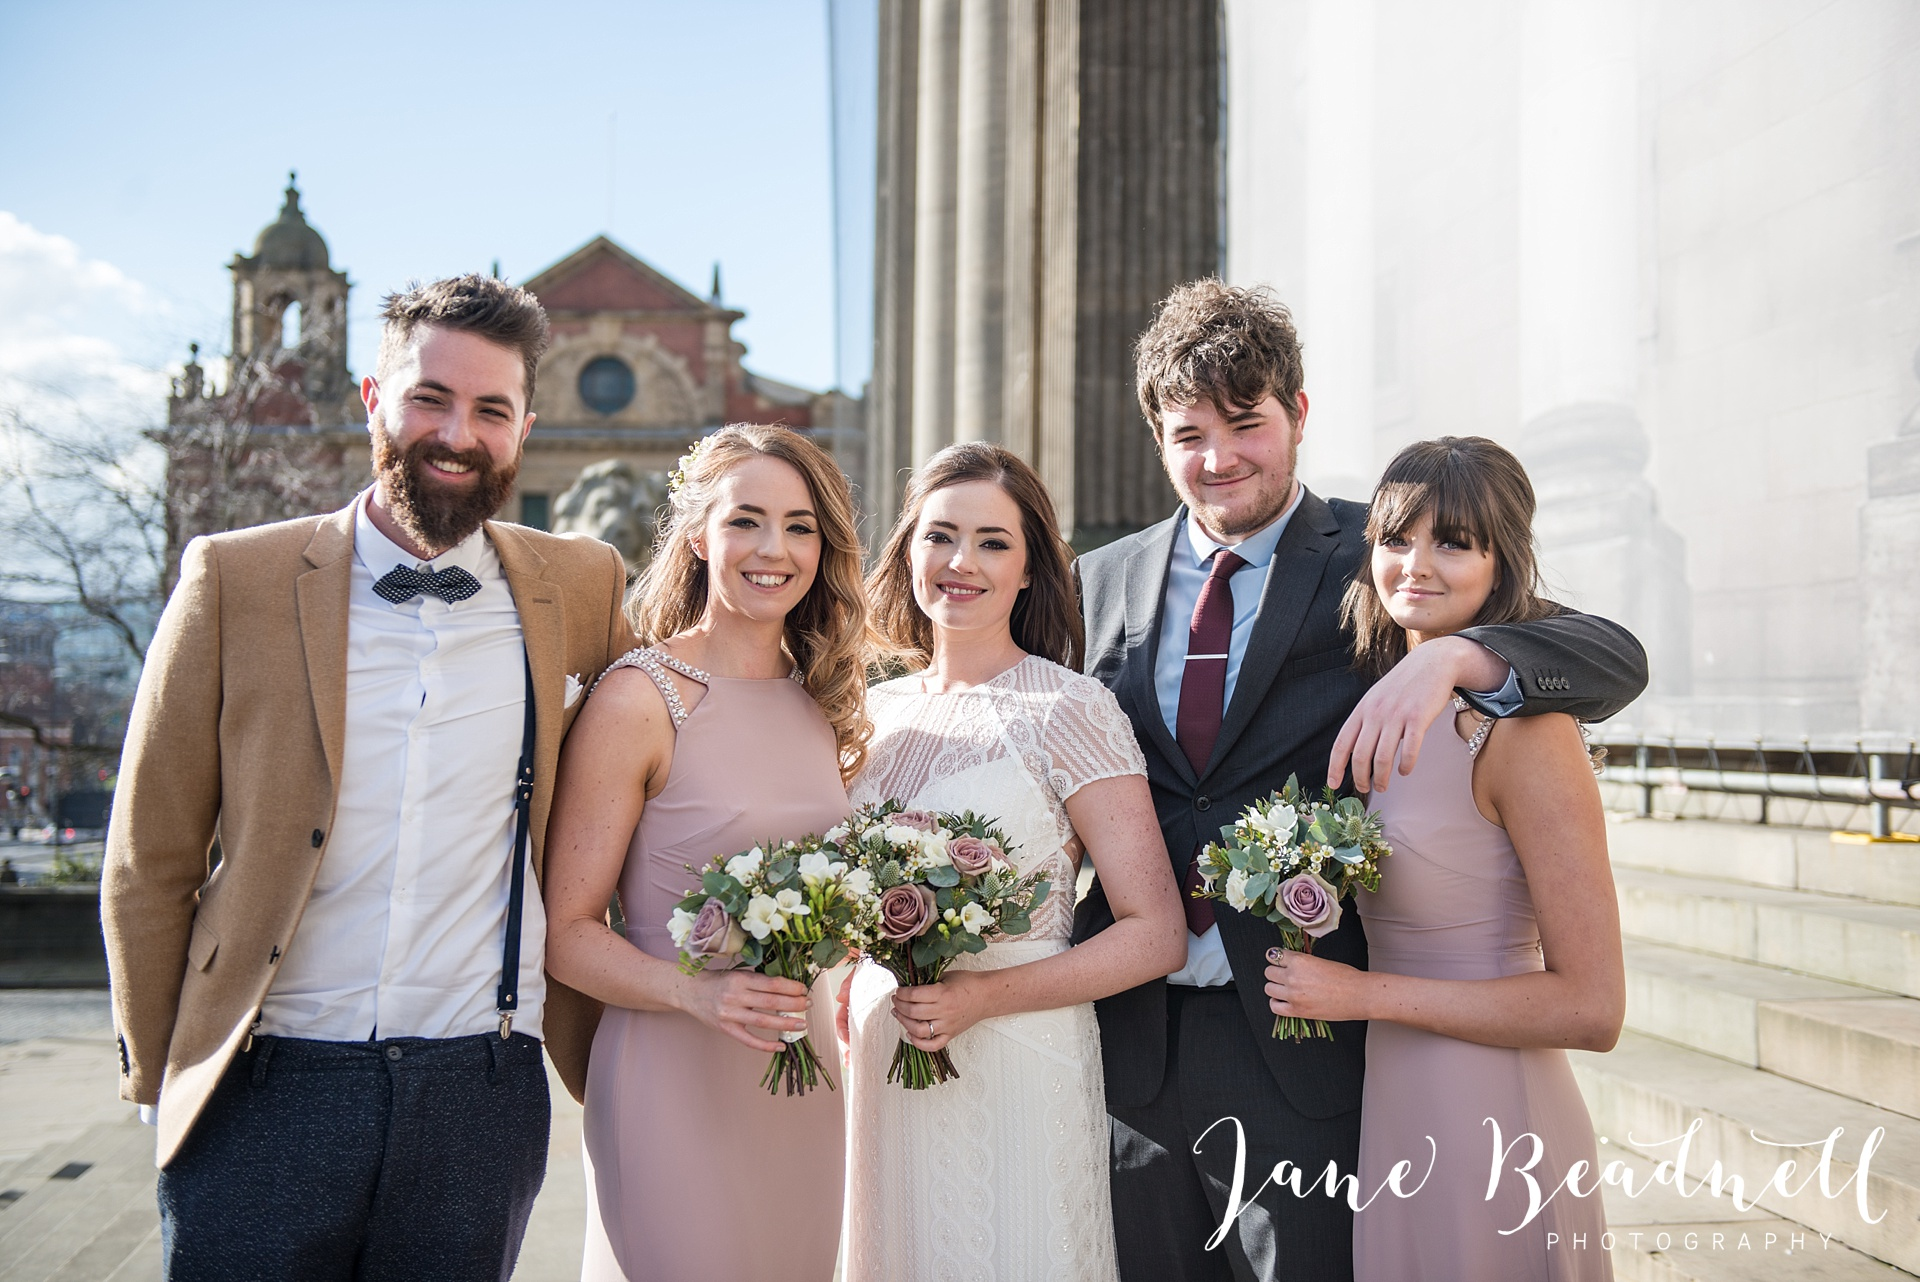 Wedding photography Cross Keys Leeds Wedding Jane Beadnell Photography_0054